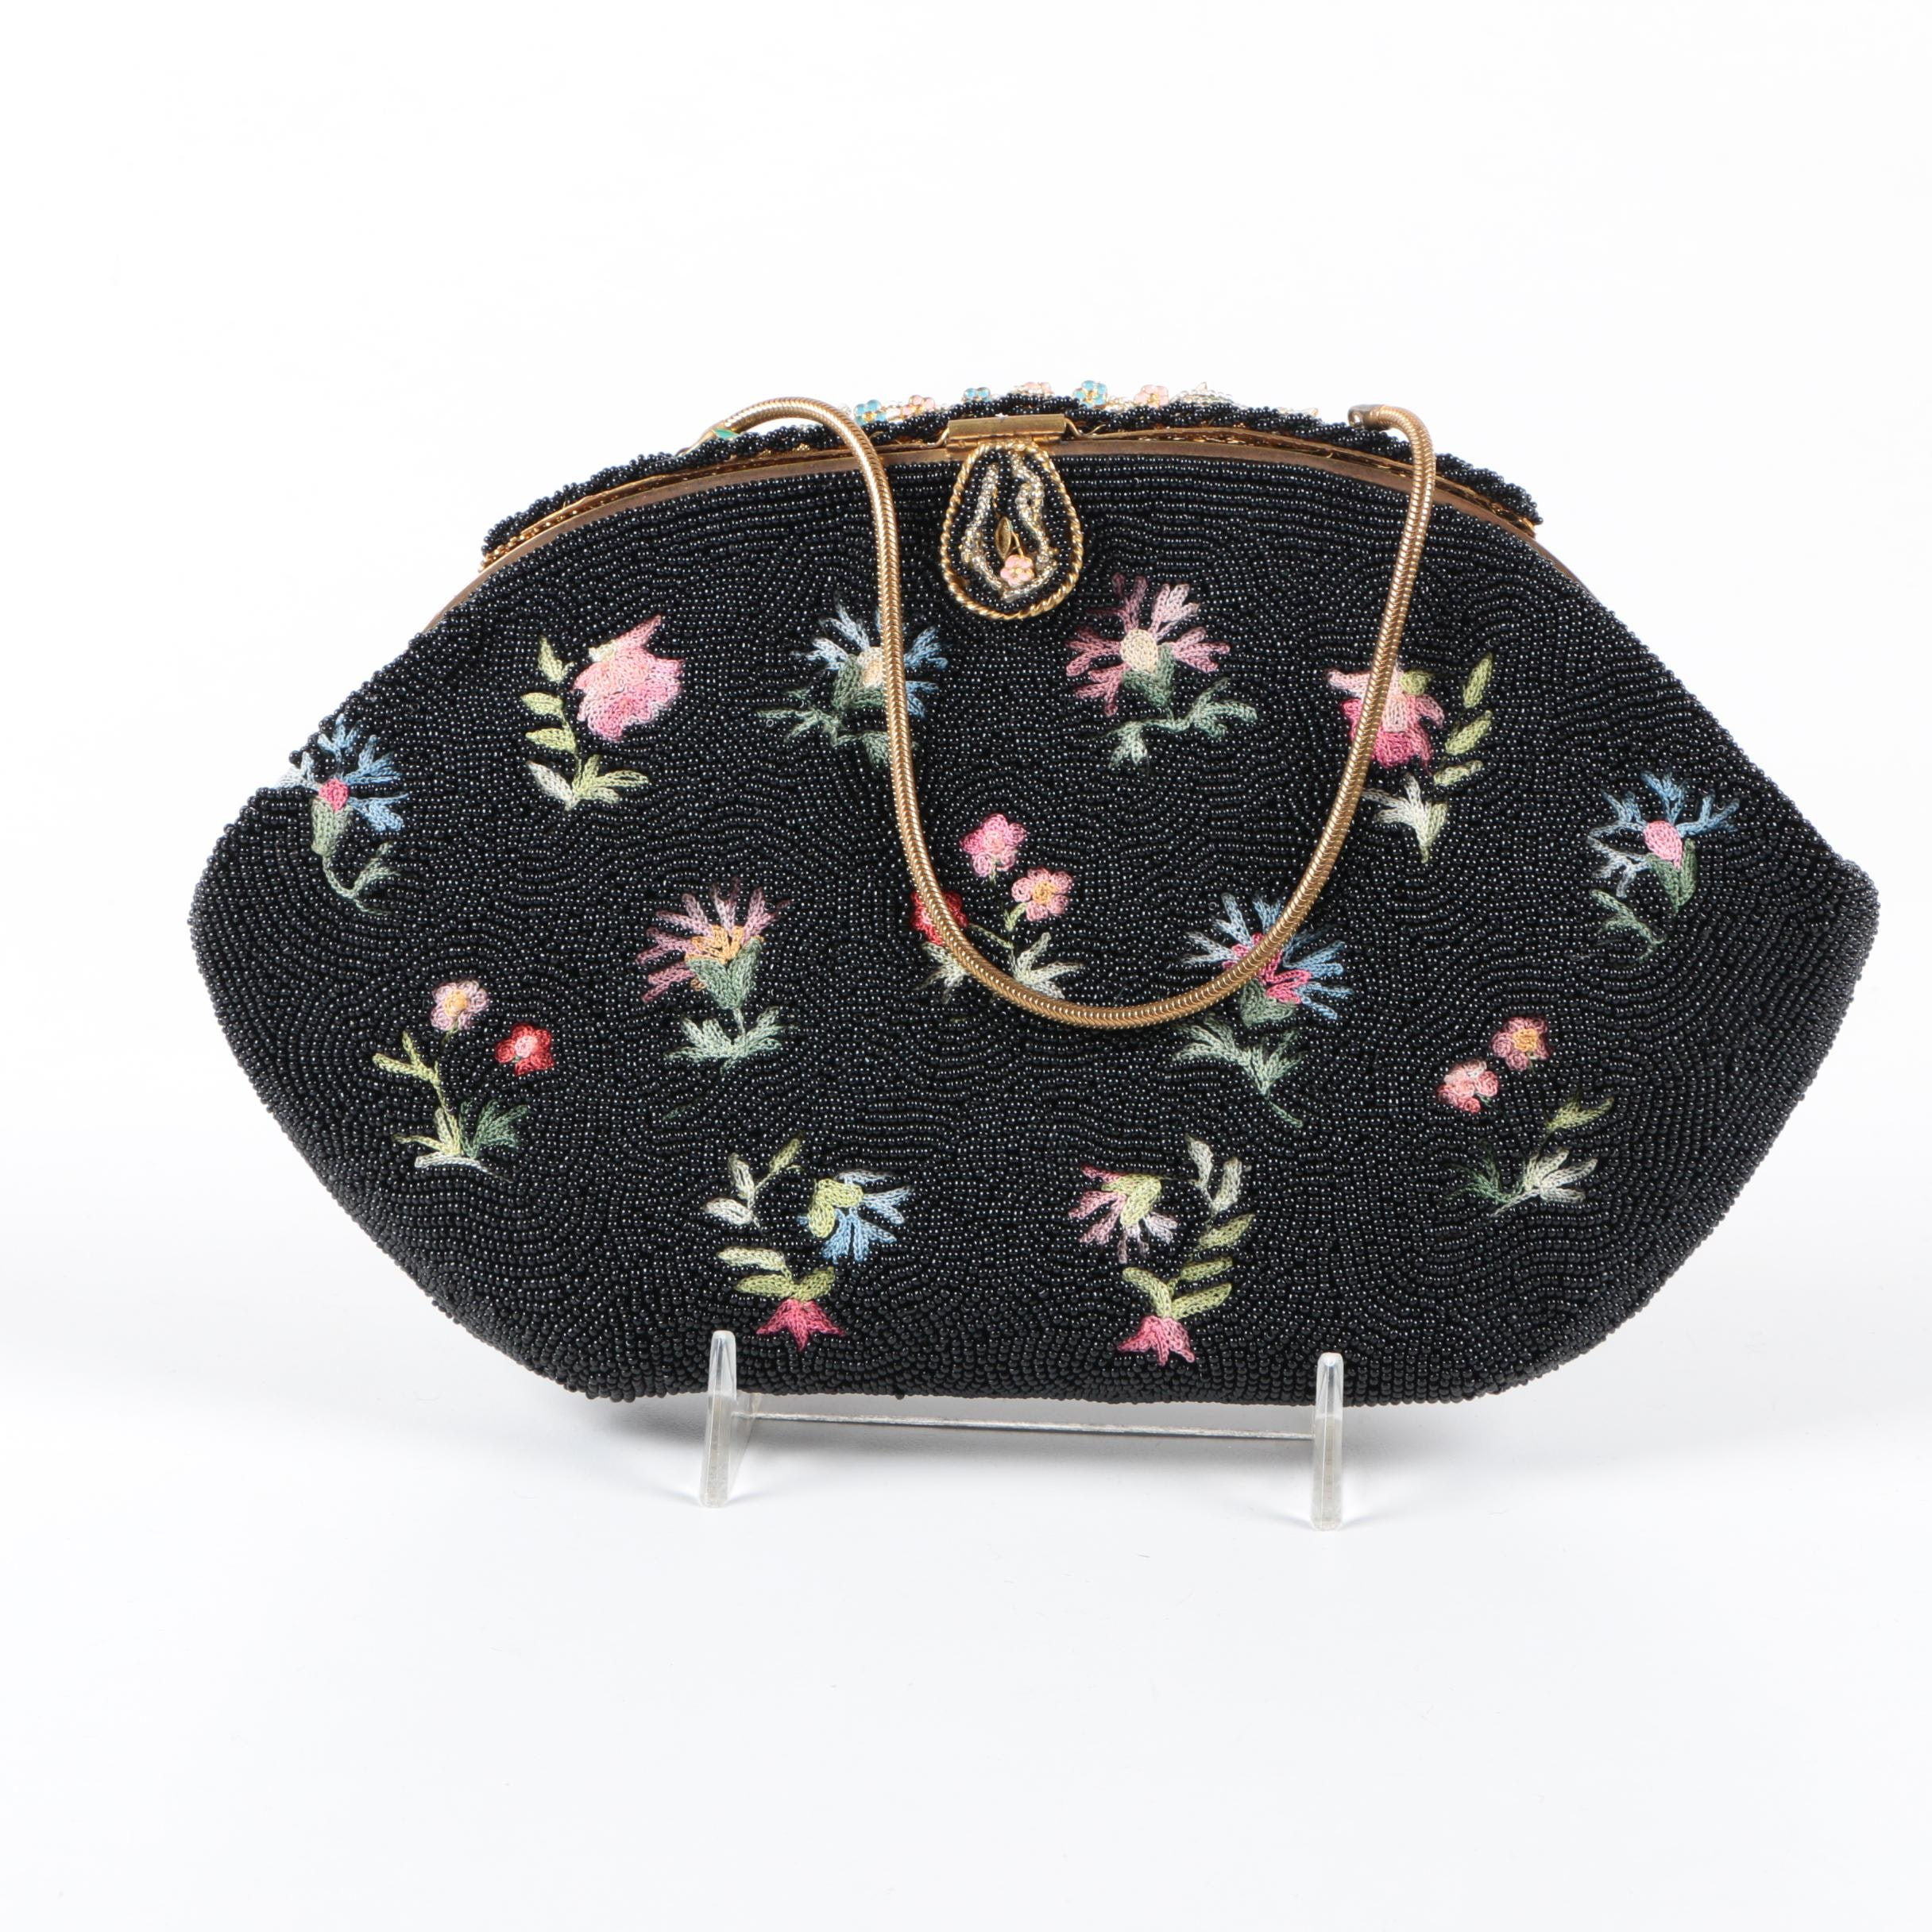 Vintage French Floral Handbag